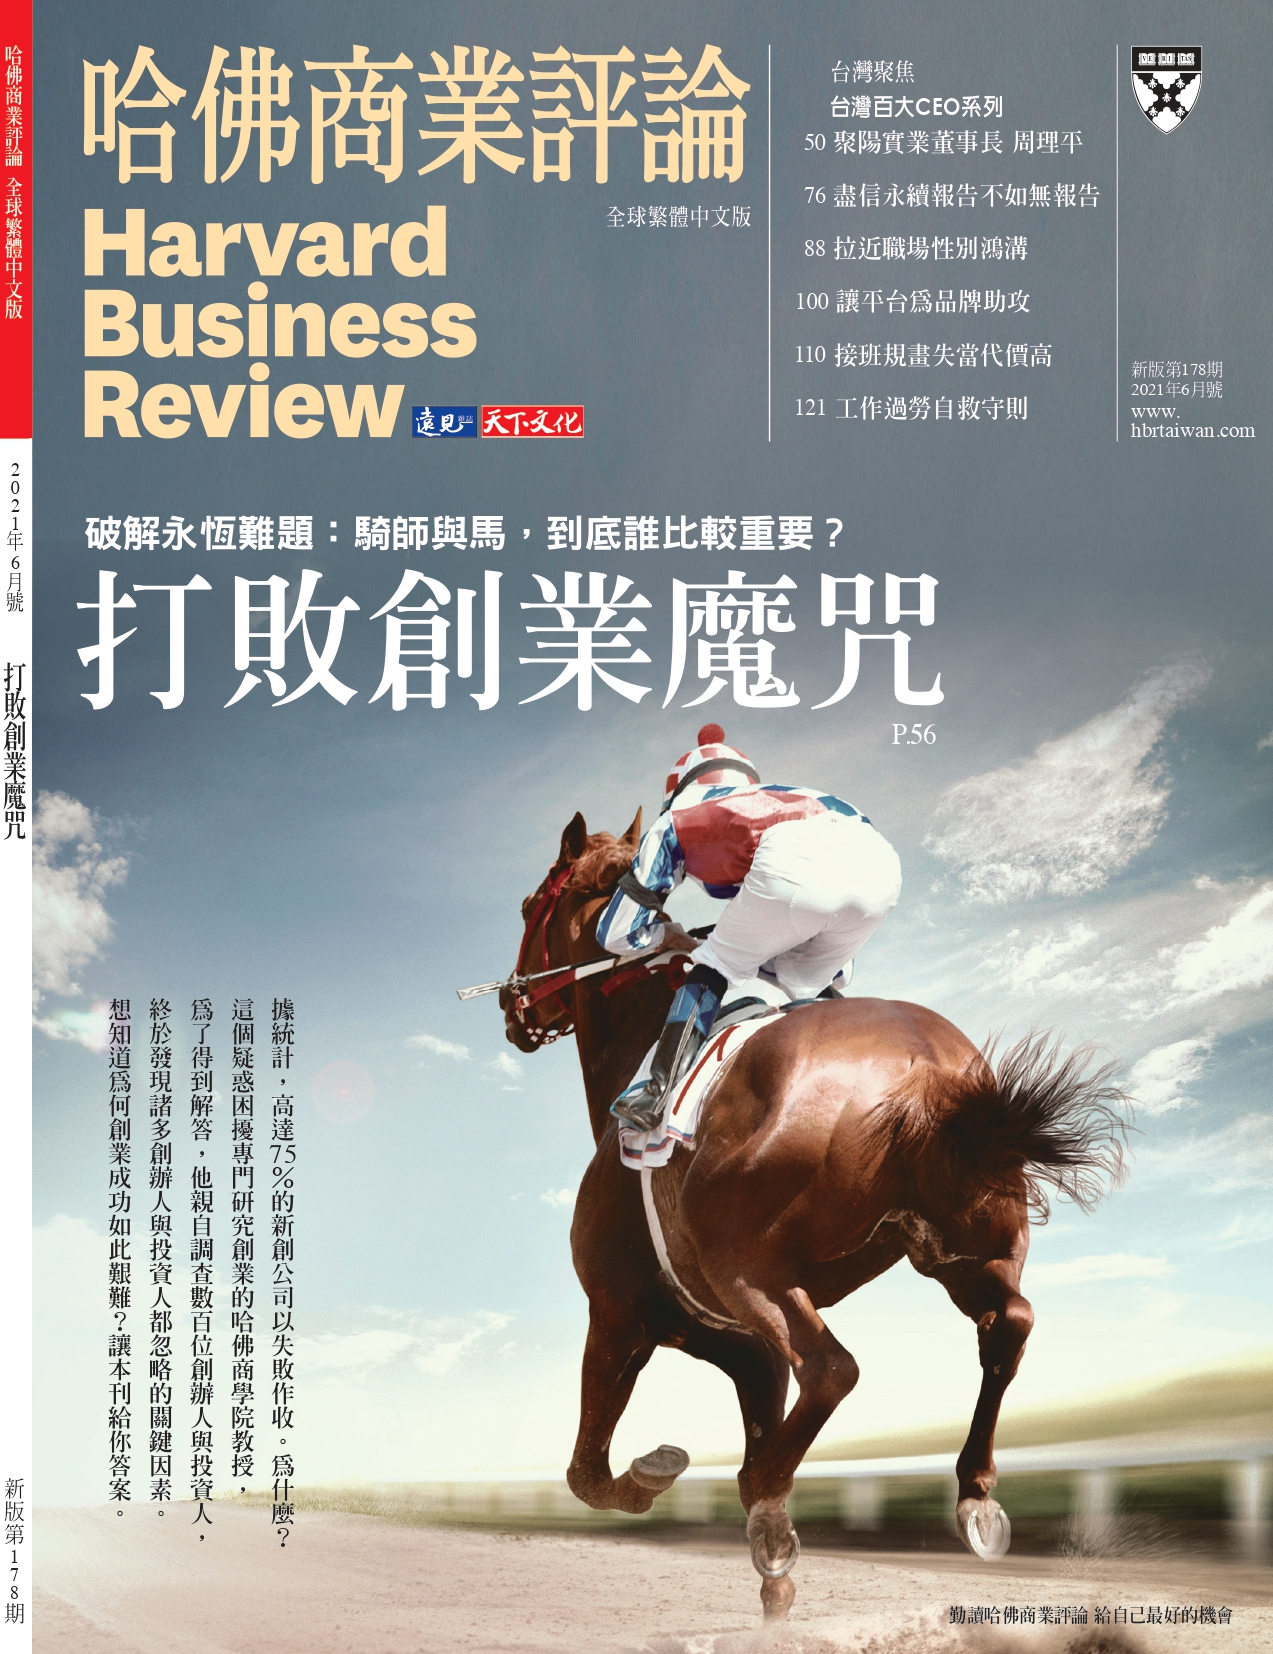 178 cover_page-0001.jpg